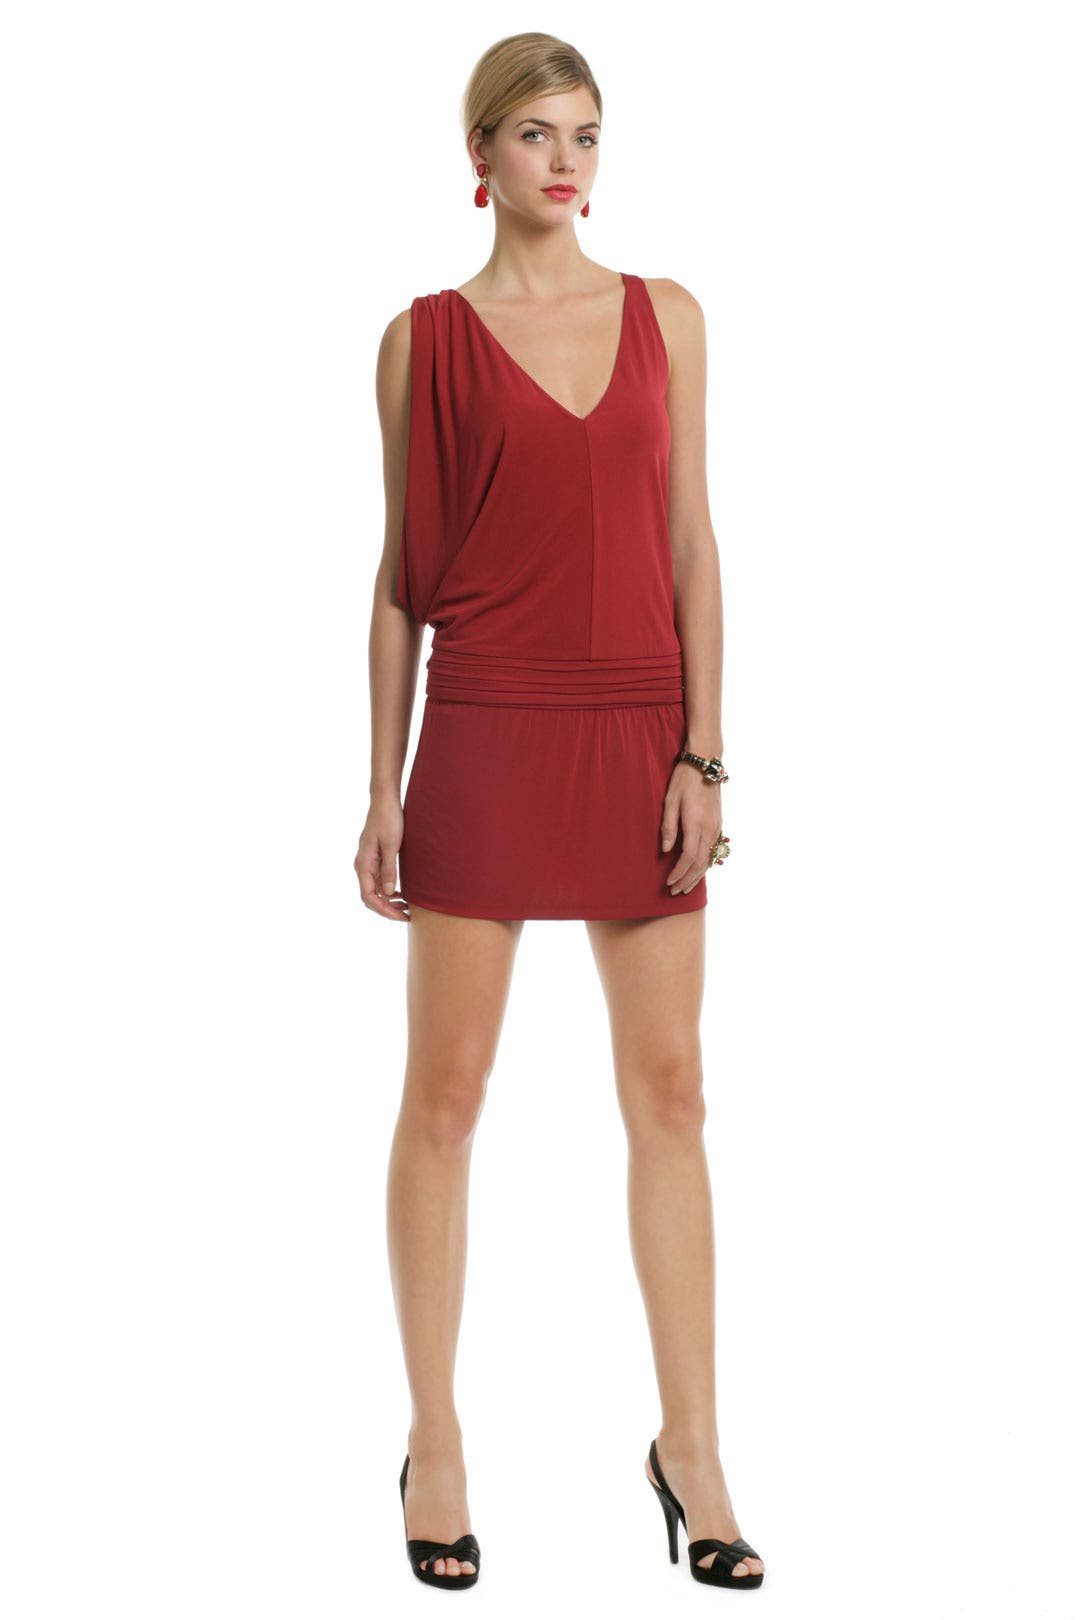 Crimson Crush Mini Dress by Haute Hippie